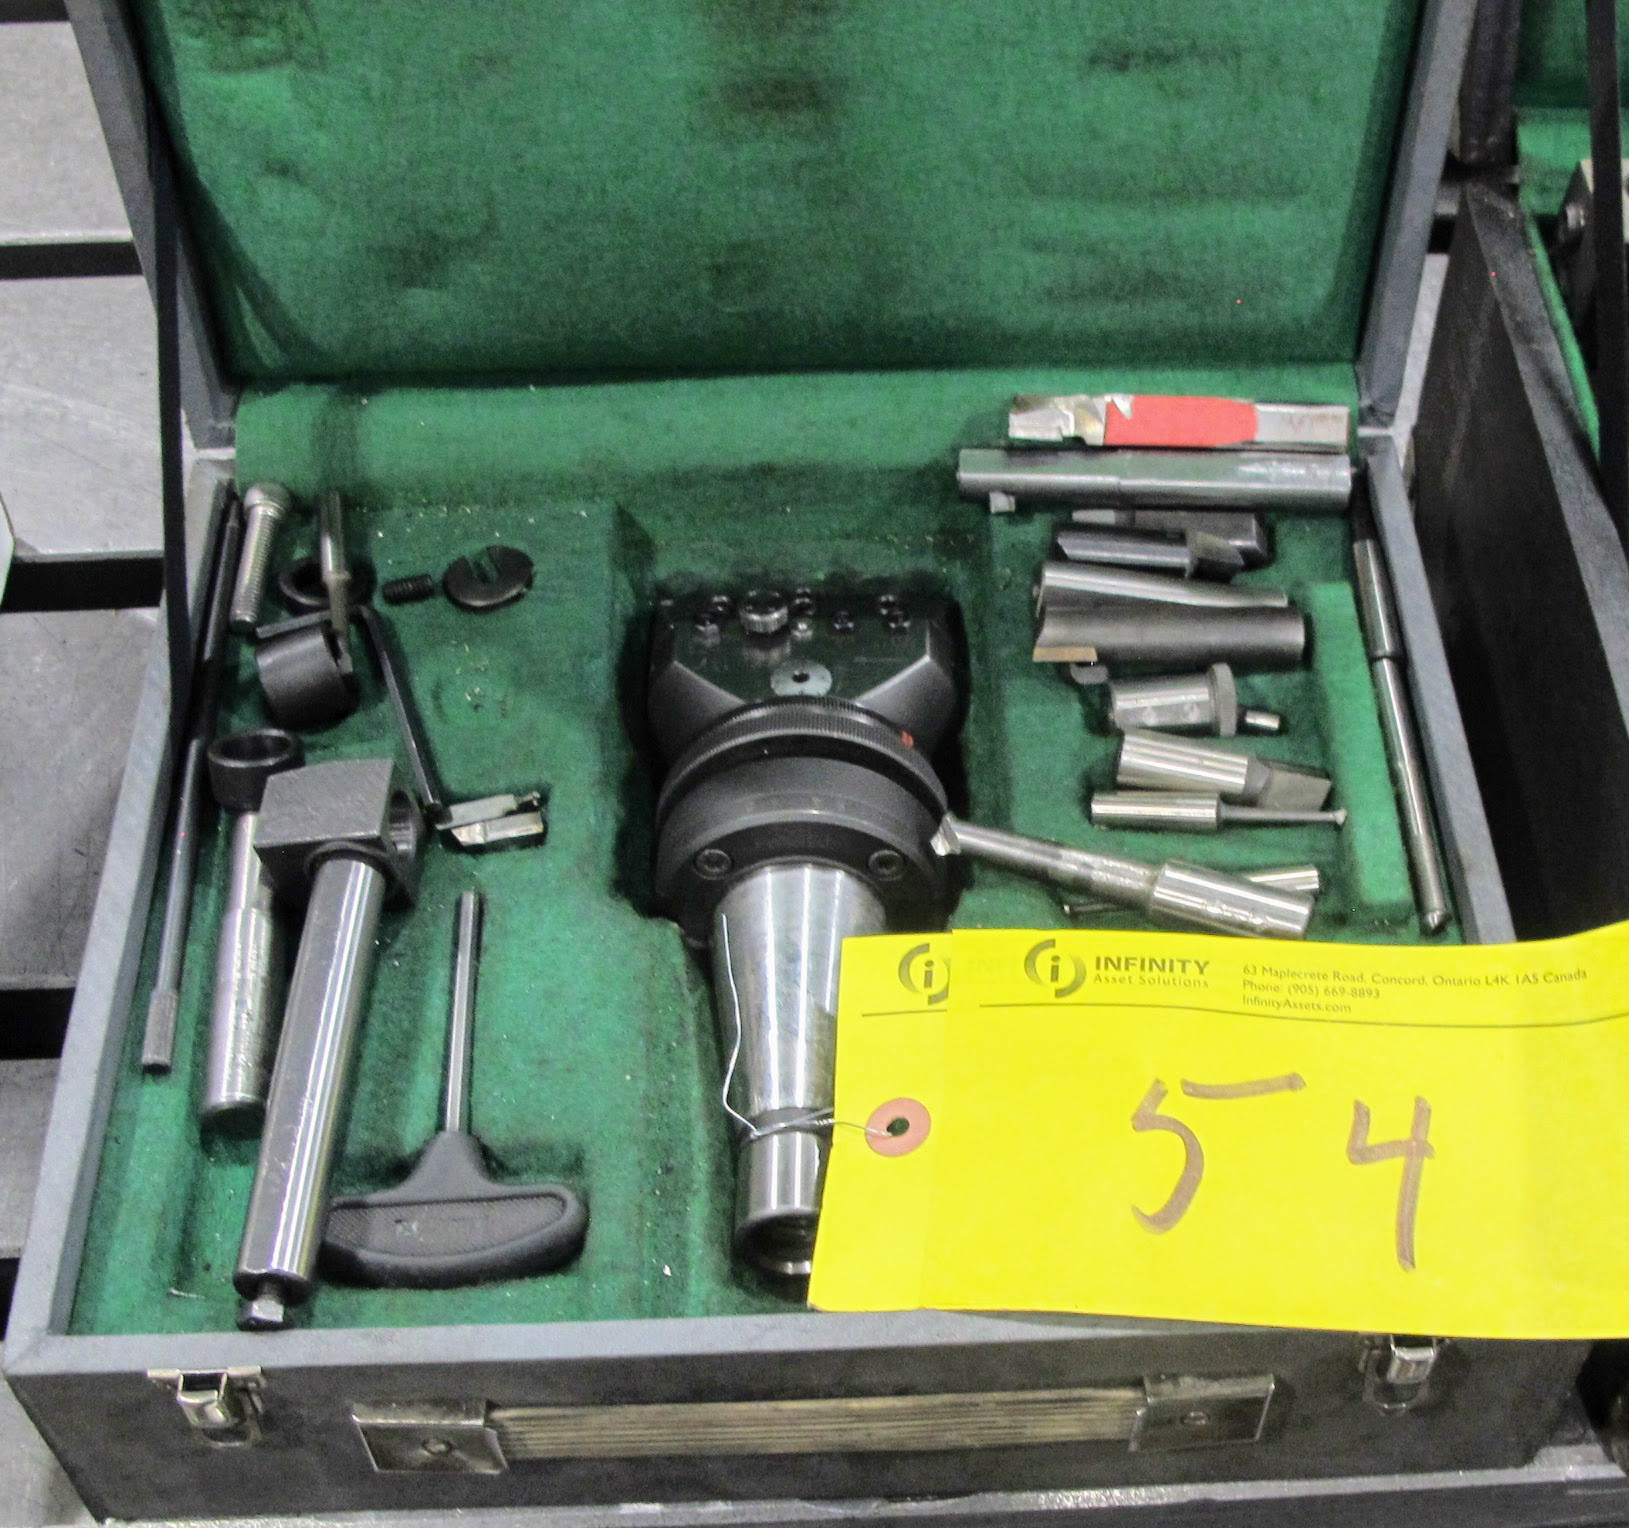 "NAREX BORING CHUCK 1 3/8"" W/CAT50 TOOL HOLDER AND ATTACHMENTS - Image 2 of 2"